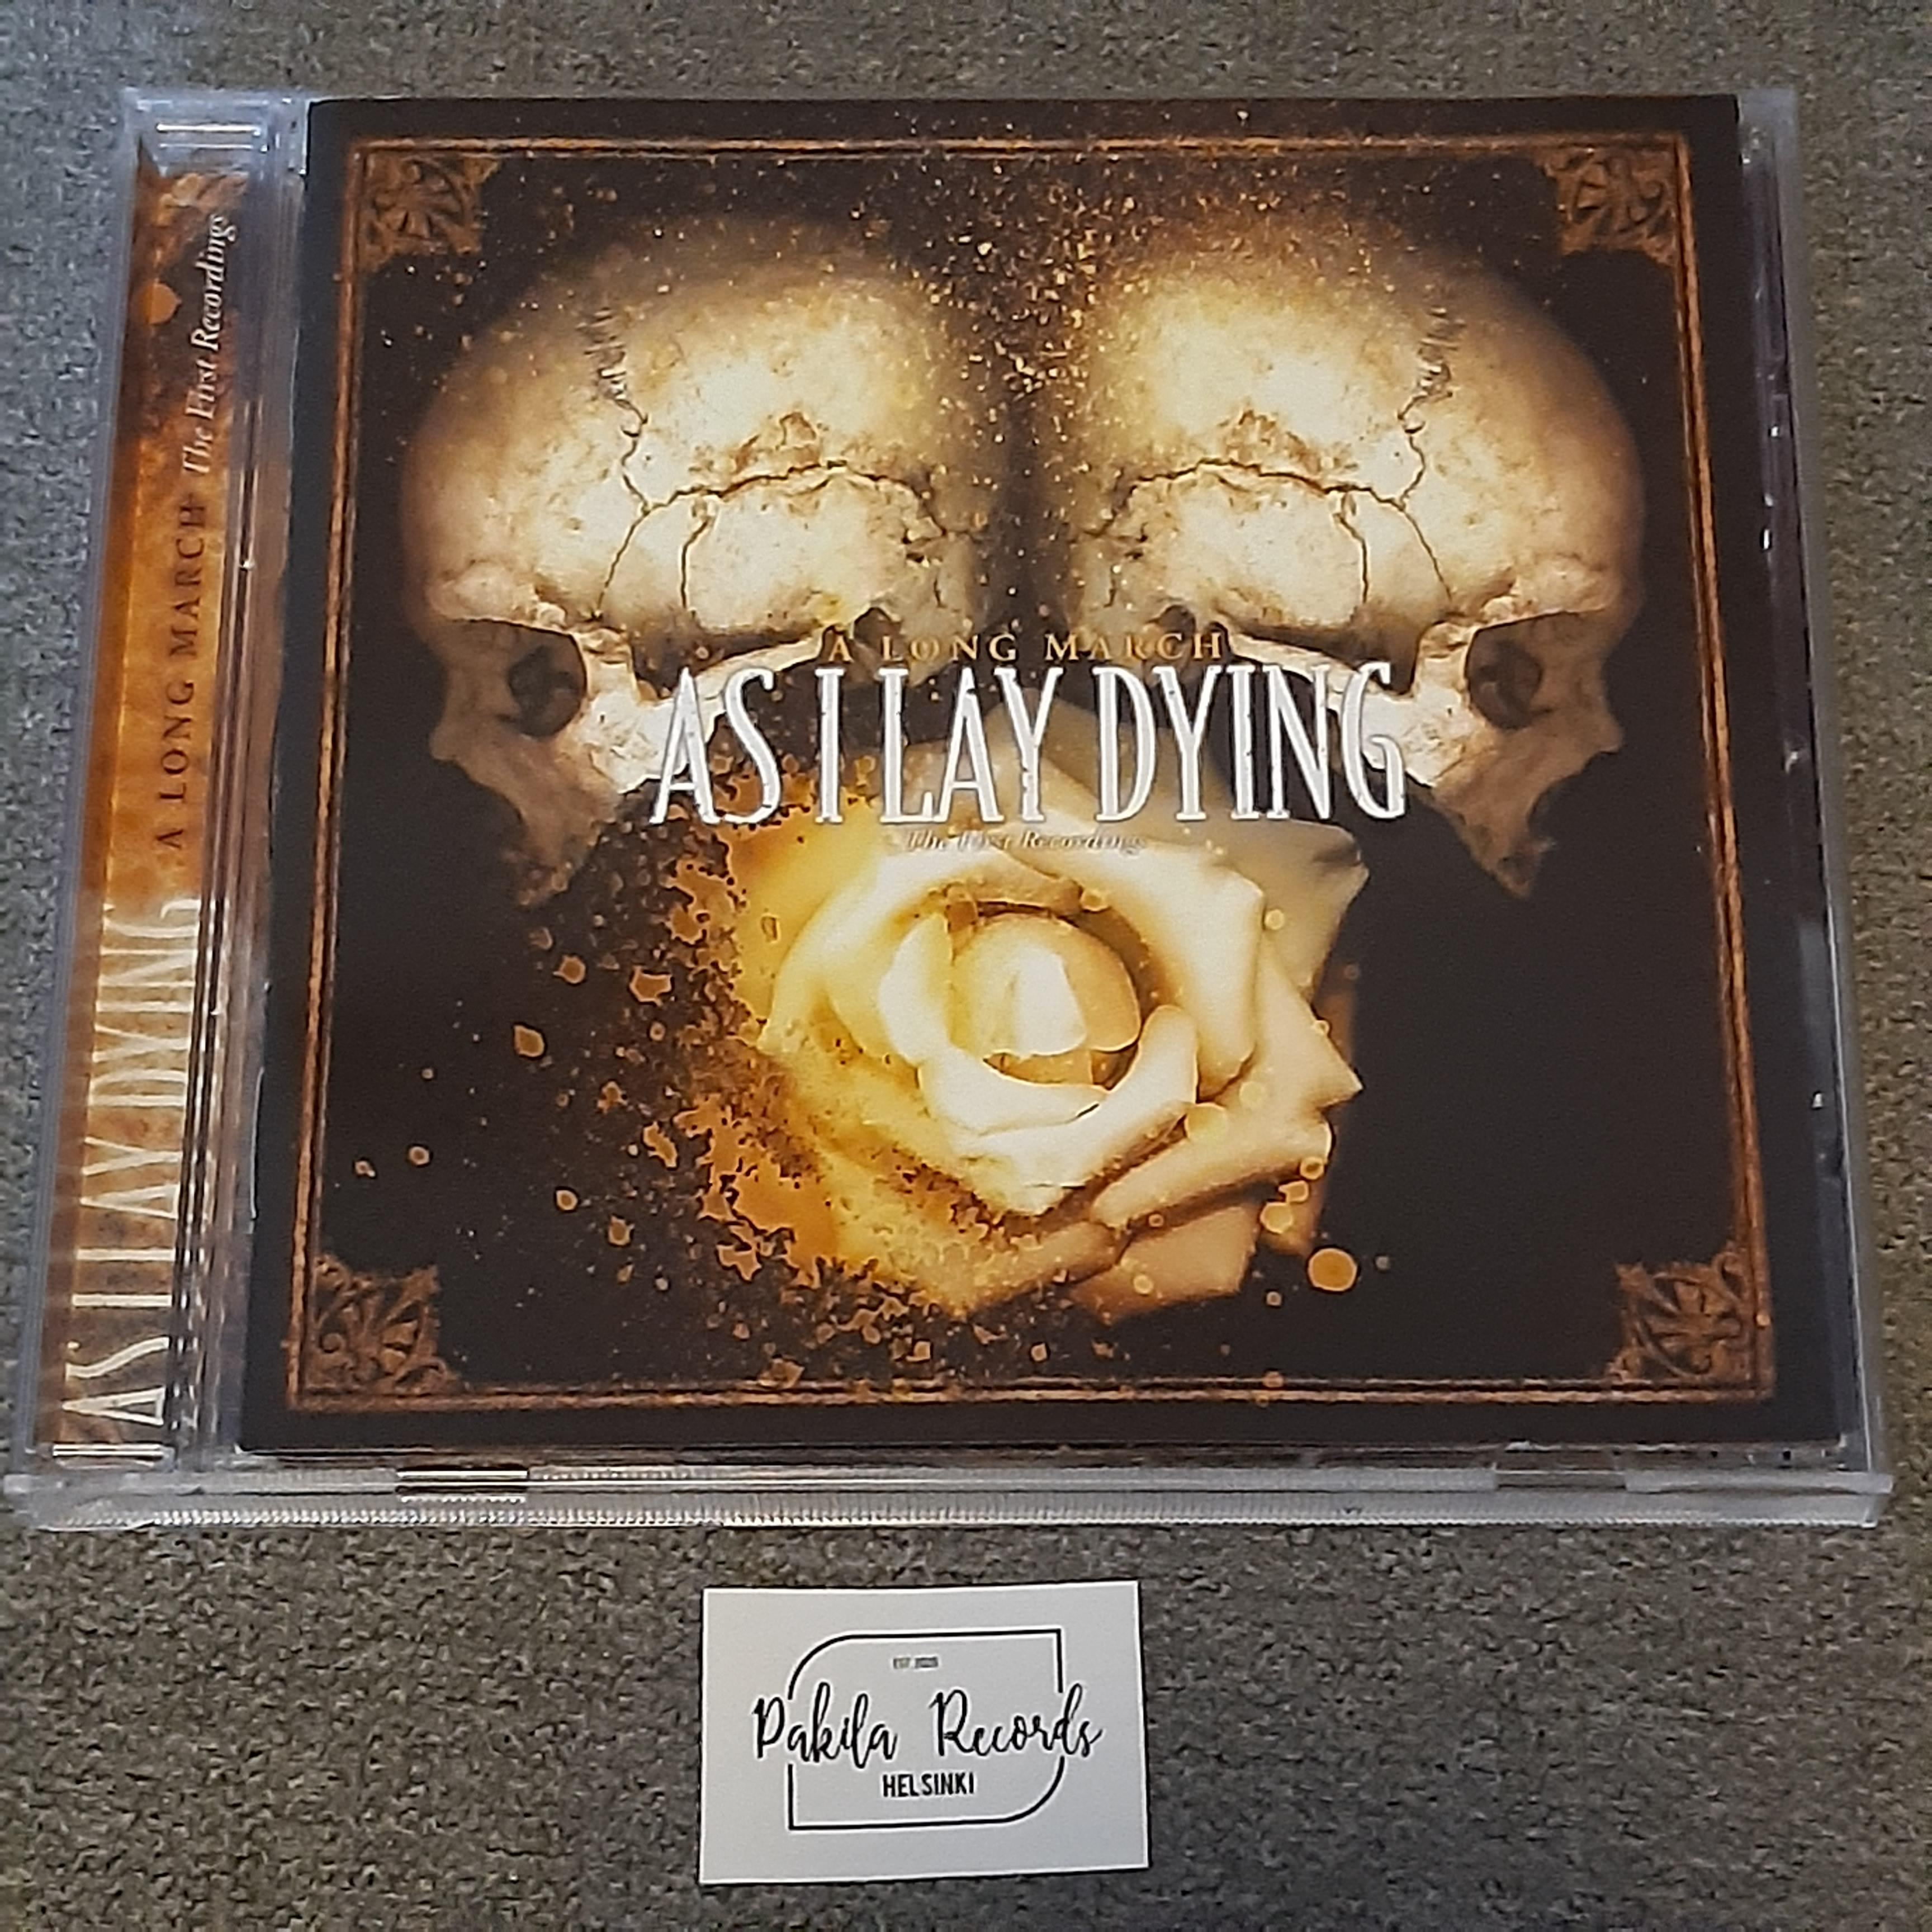 As I Lay Dying - A Long March, The First Recordings - CD (käytetty)